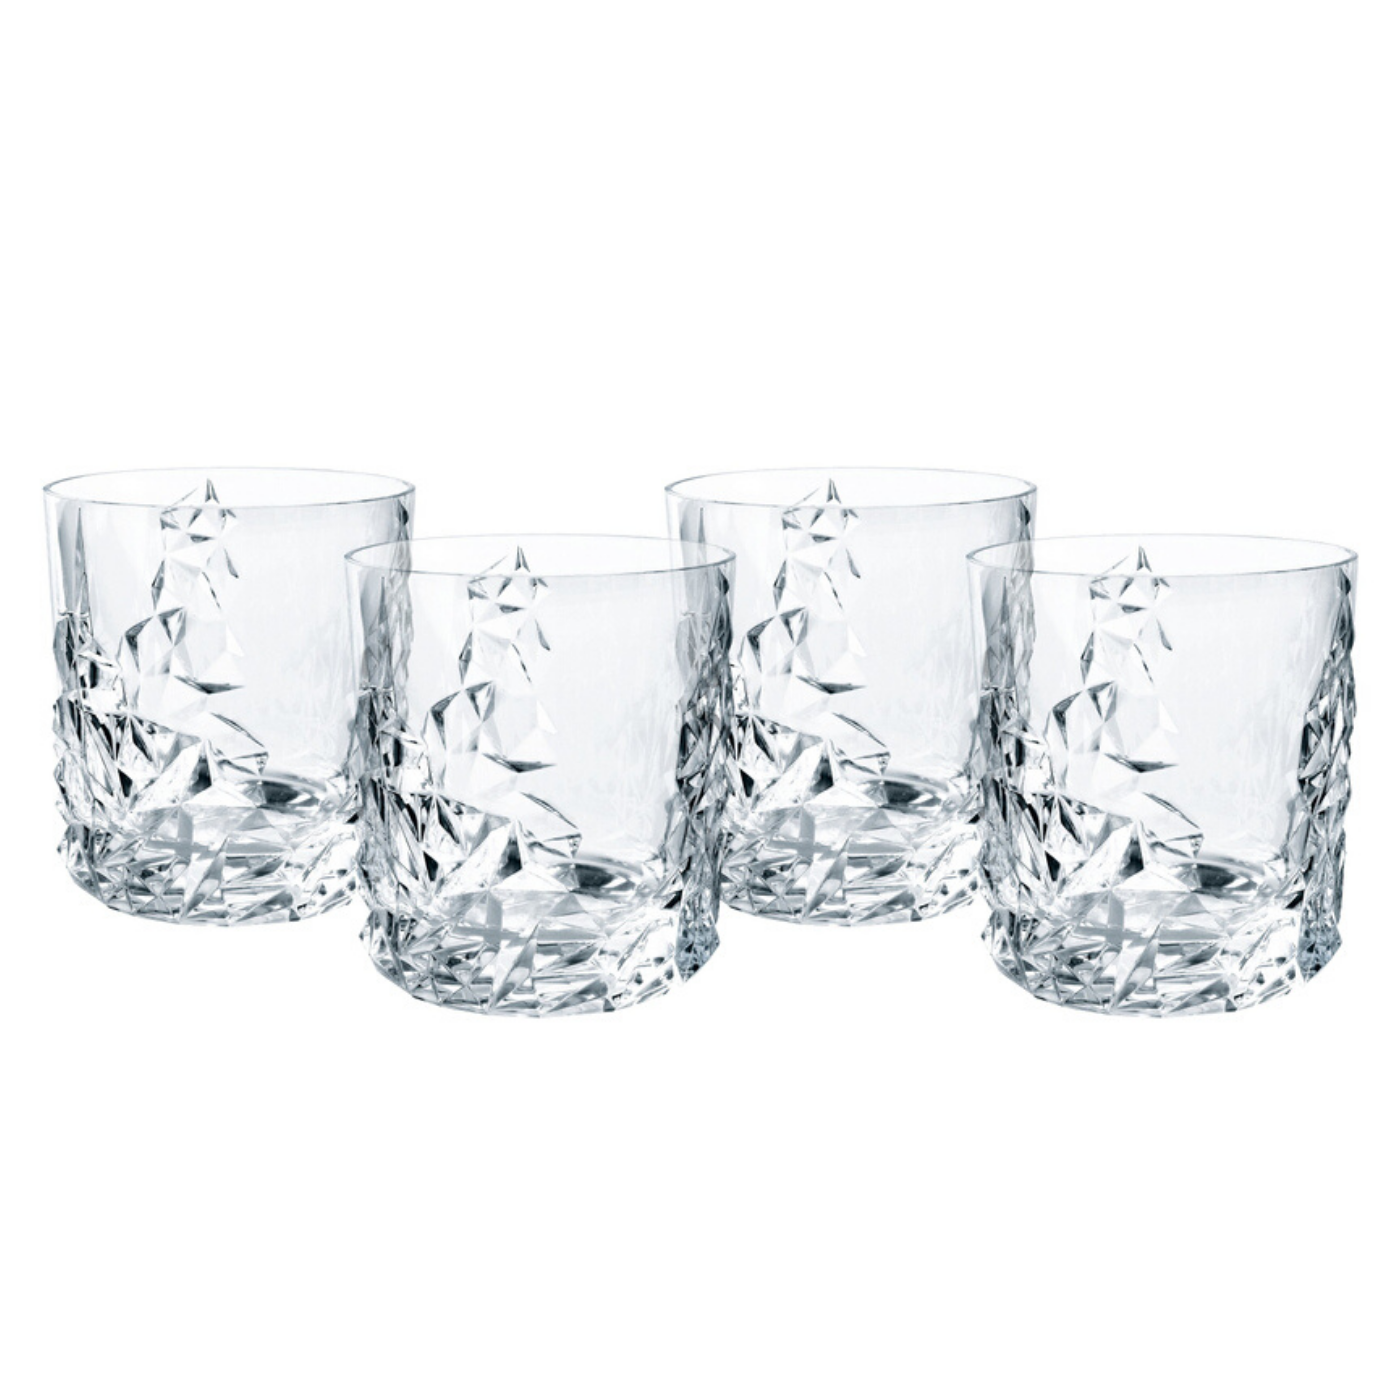 Nachtmann Sculpture Tumblers (set of 4)